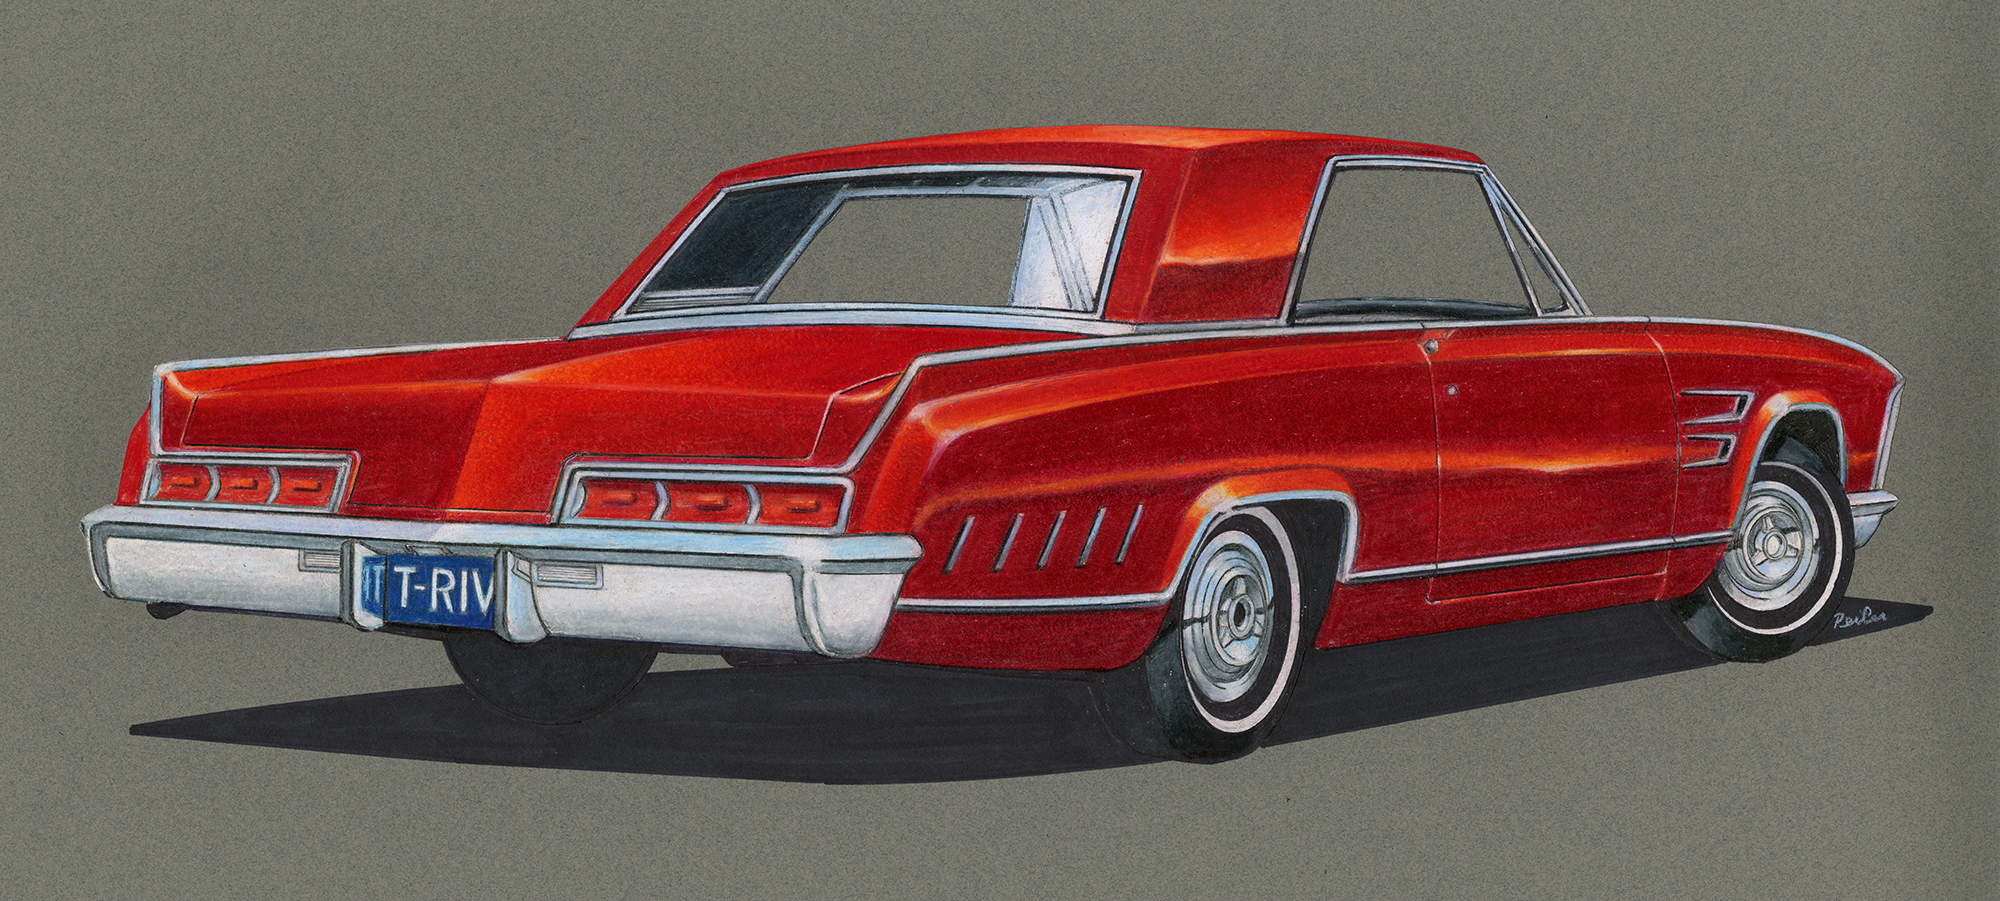 1963 Buick Riviera by Ford